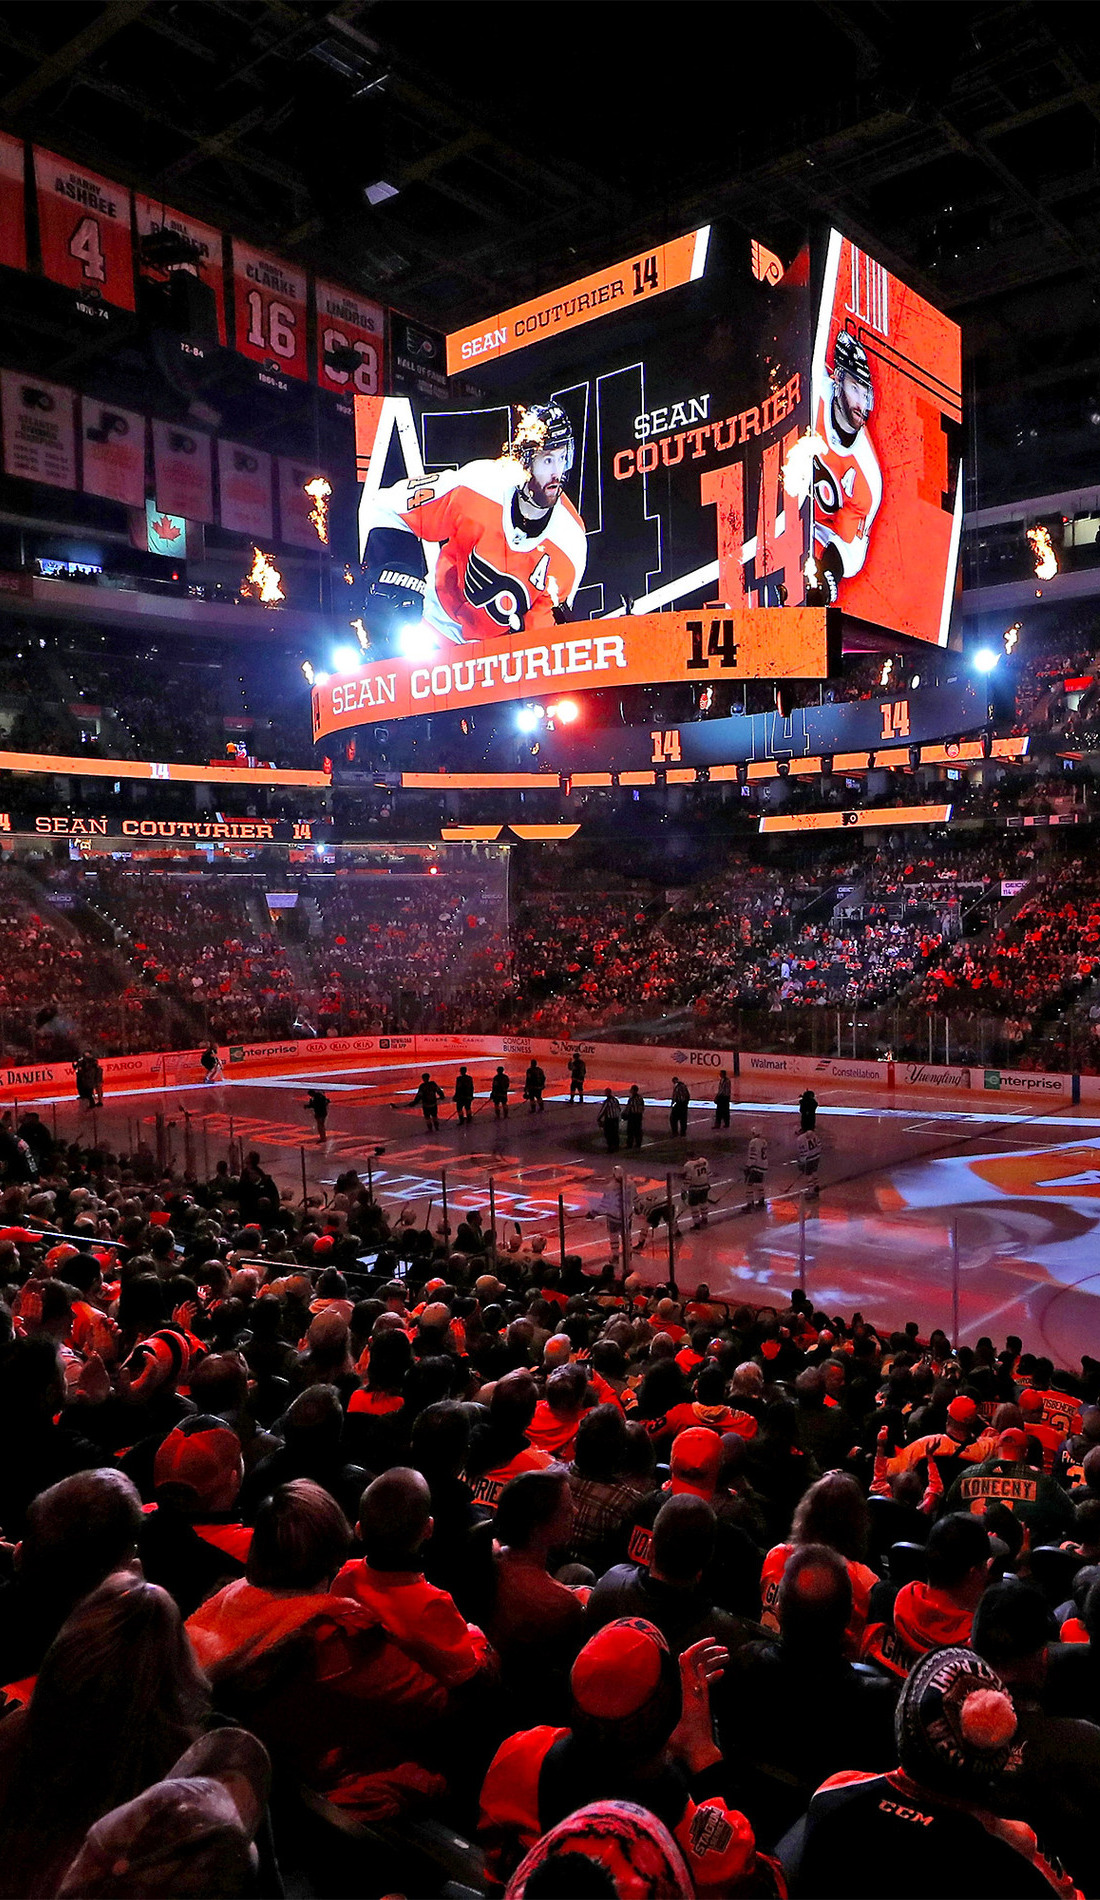 A Philadelphia Flyers live event